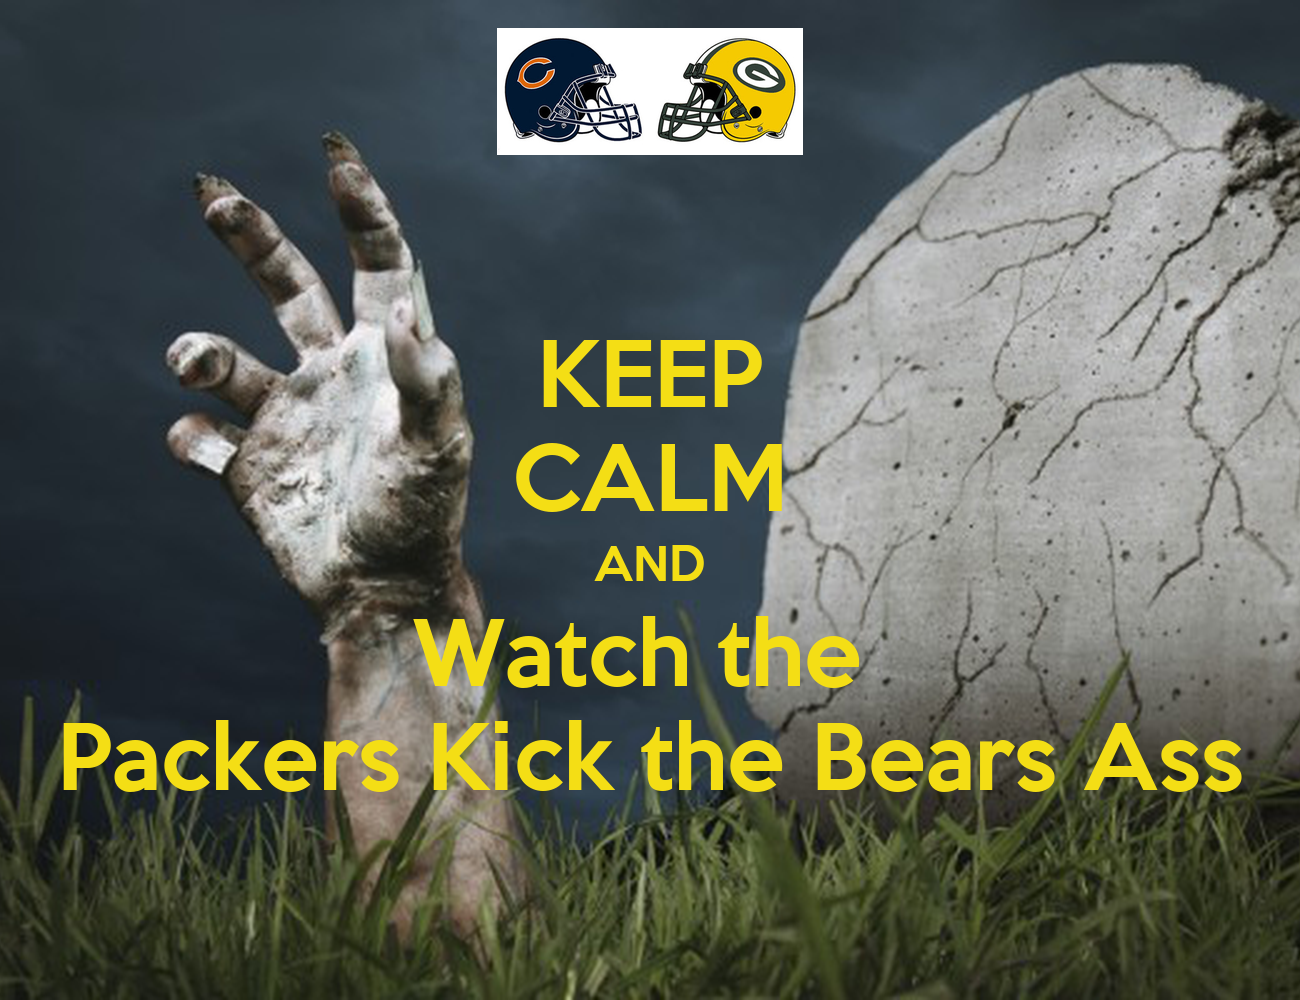 Consider, that Ass bear falcon kicking are right